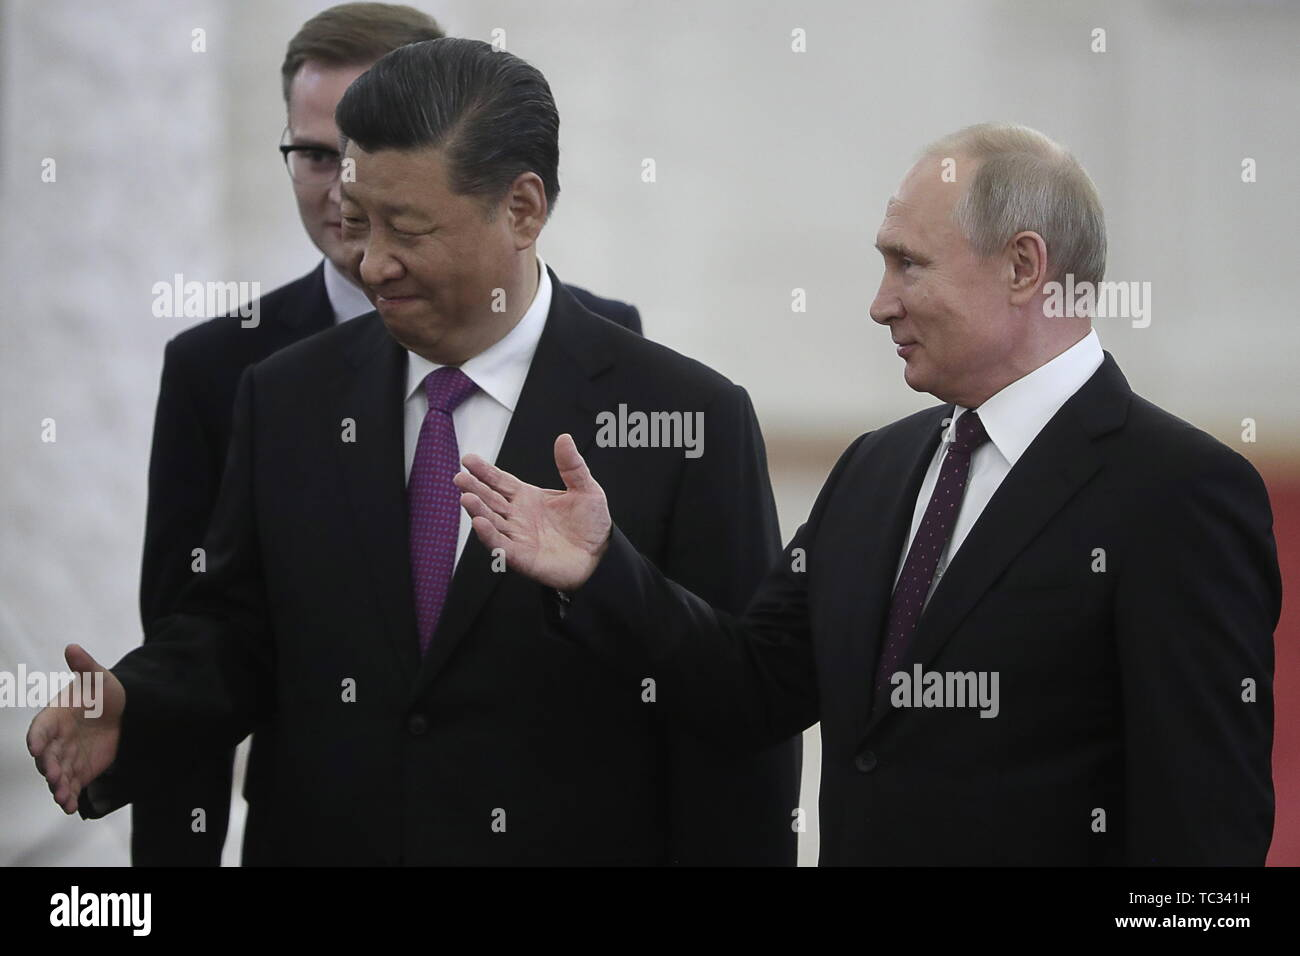 Moscow, Russia. 05th June, 2019. MOSCOW, RUSSIA - JUNE 5, 2019: China's President Xi Jinping (L front) and Russia's President Vladimir Putin (R) during a meeting in the Moscow Kremlin; the Chinese leader is on a three-day state visit to Russia. Mikhail Metzel/TASS Credit: ITAR-TASS News Agency/Alamy Live News - Stock Image